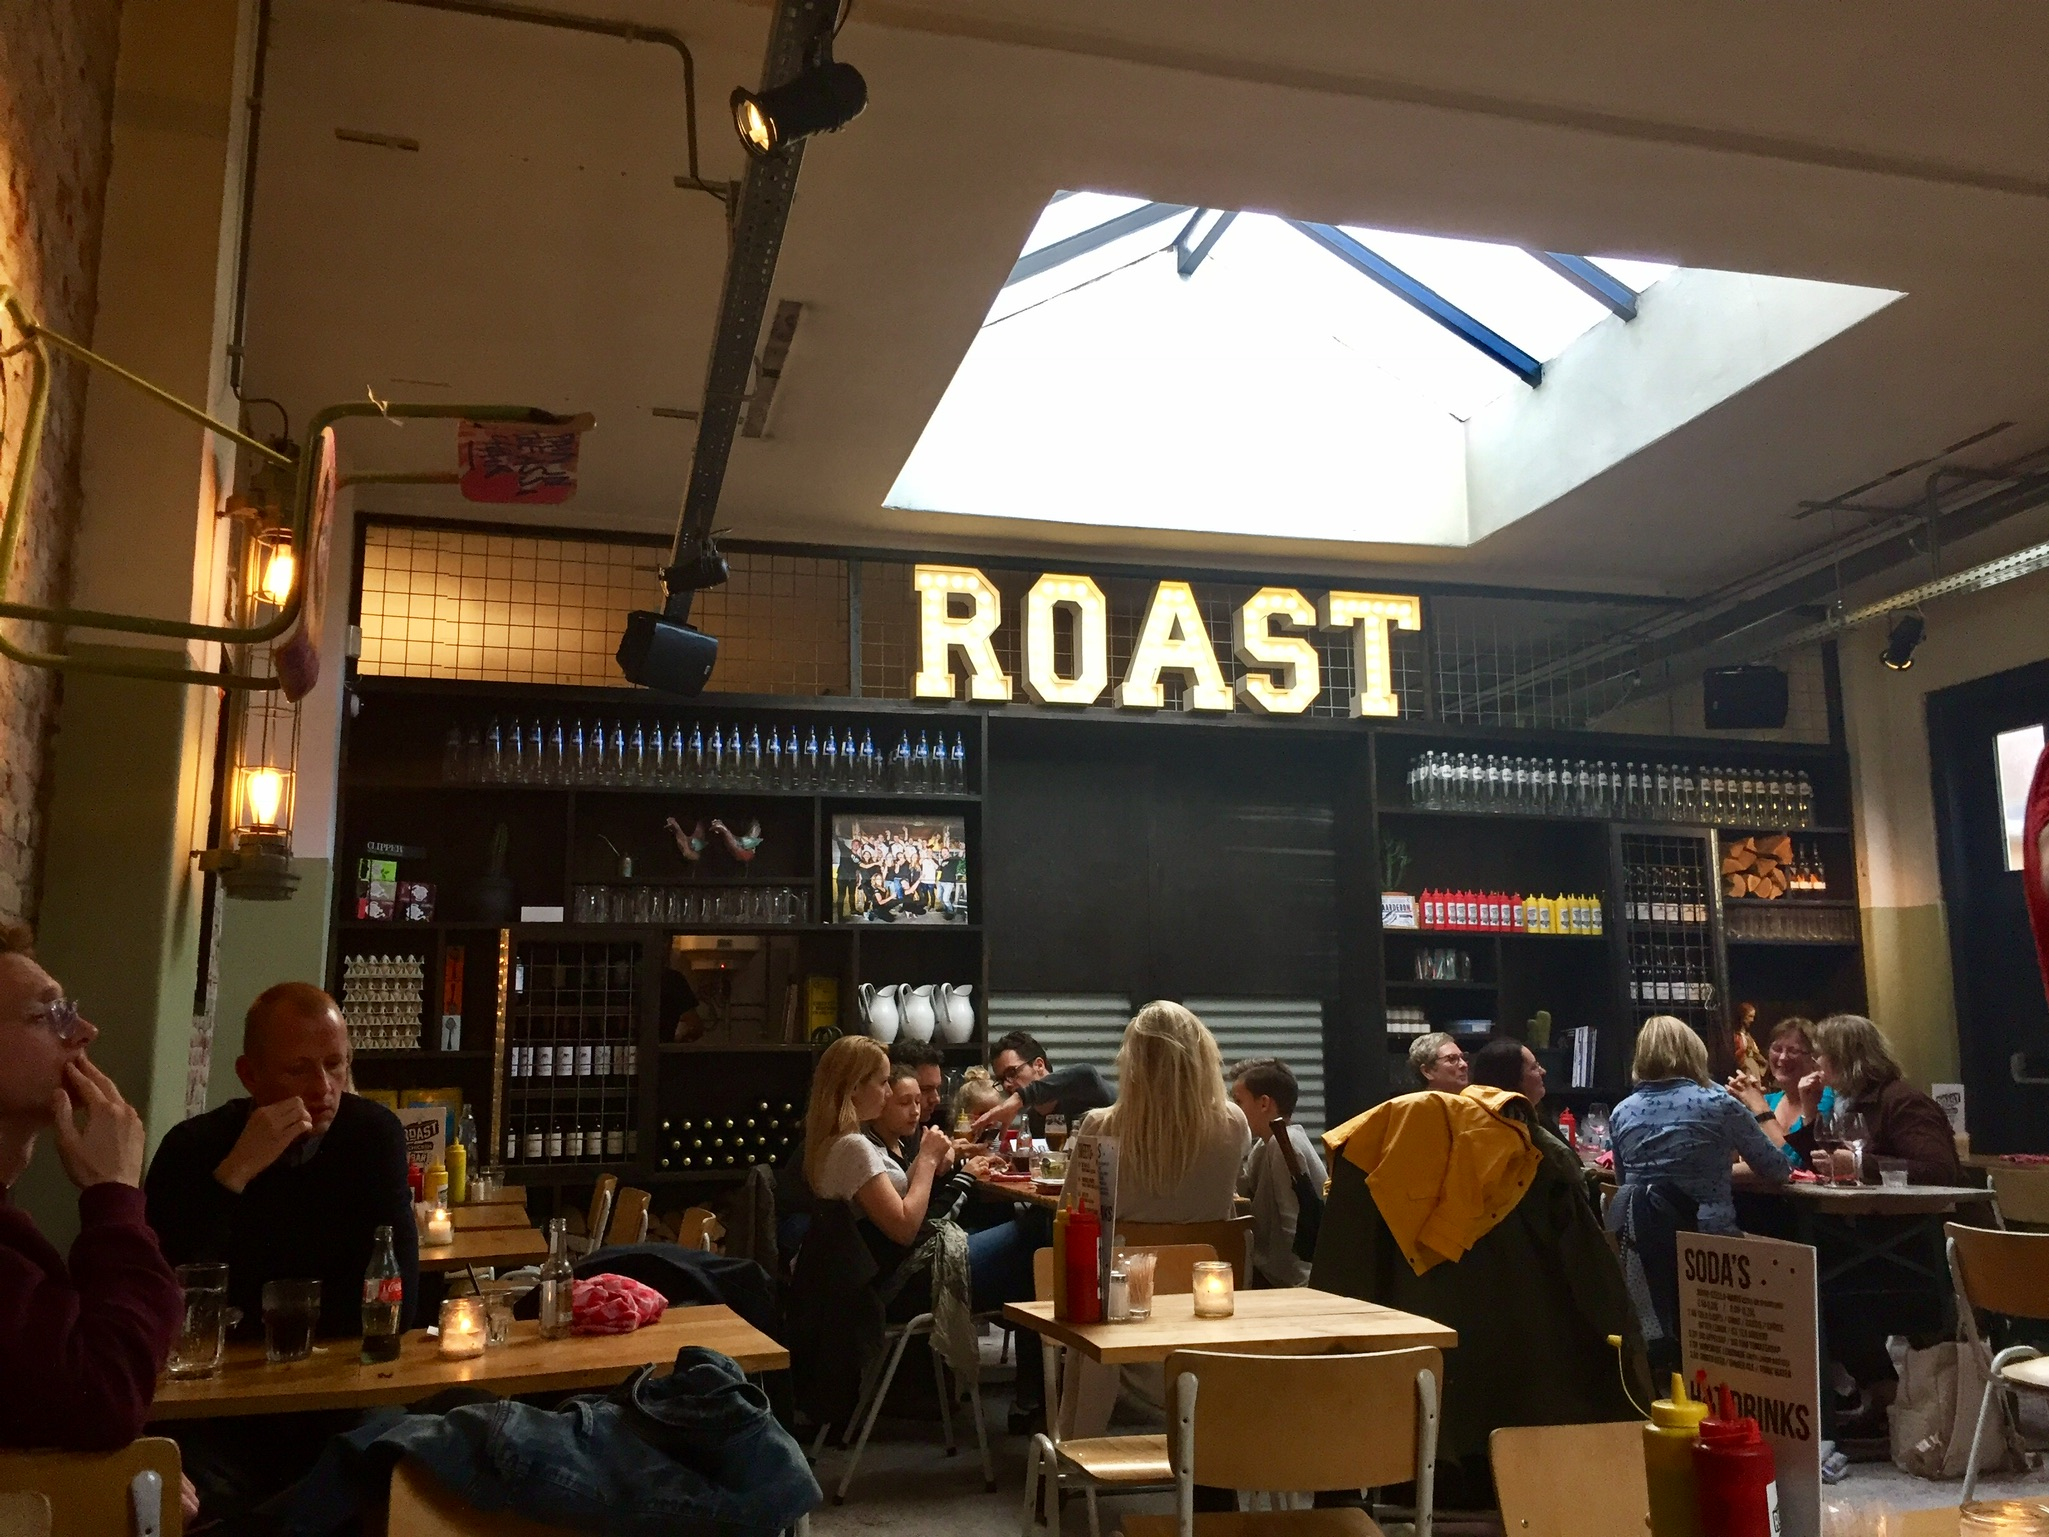 Roast Chicken Bar and The Egg Store, Haarlem.Photo taken with iPhone 6.